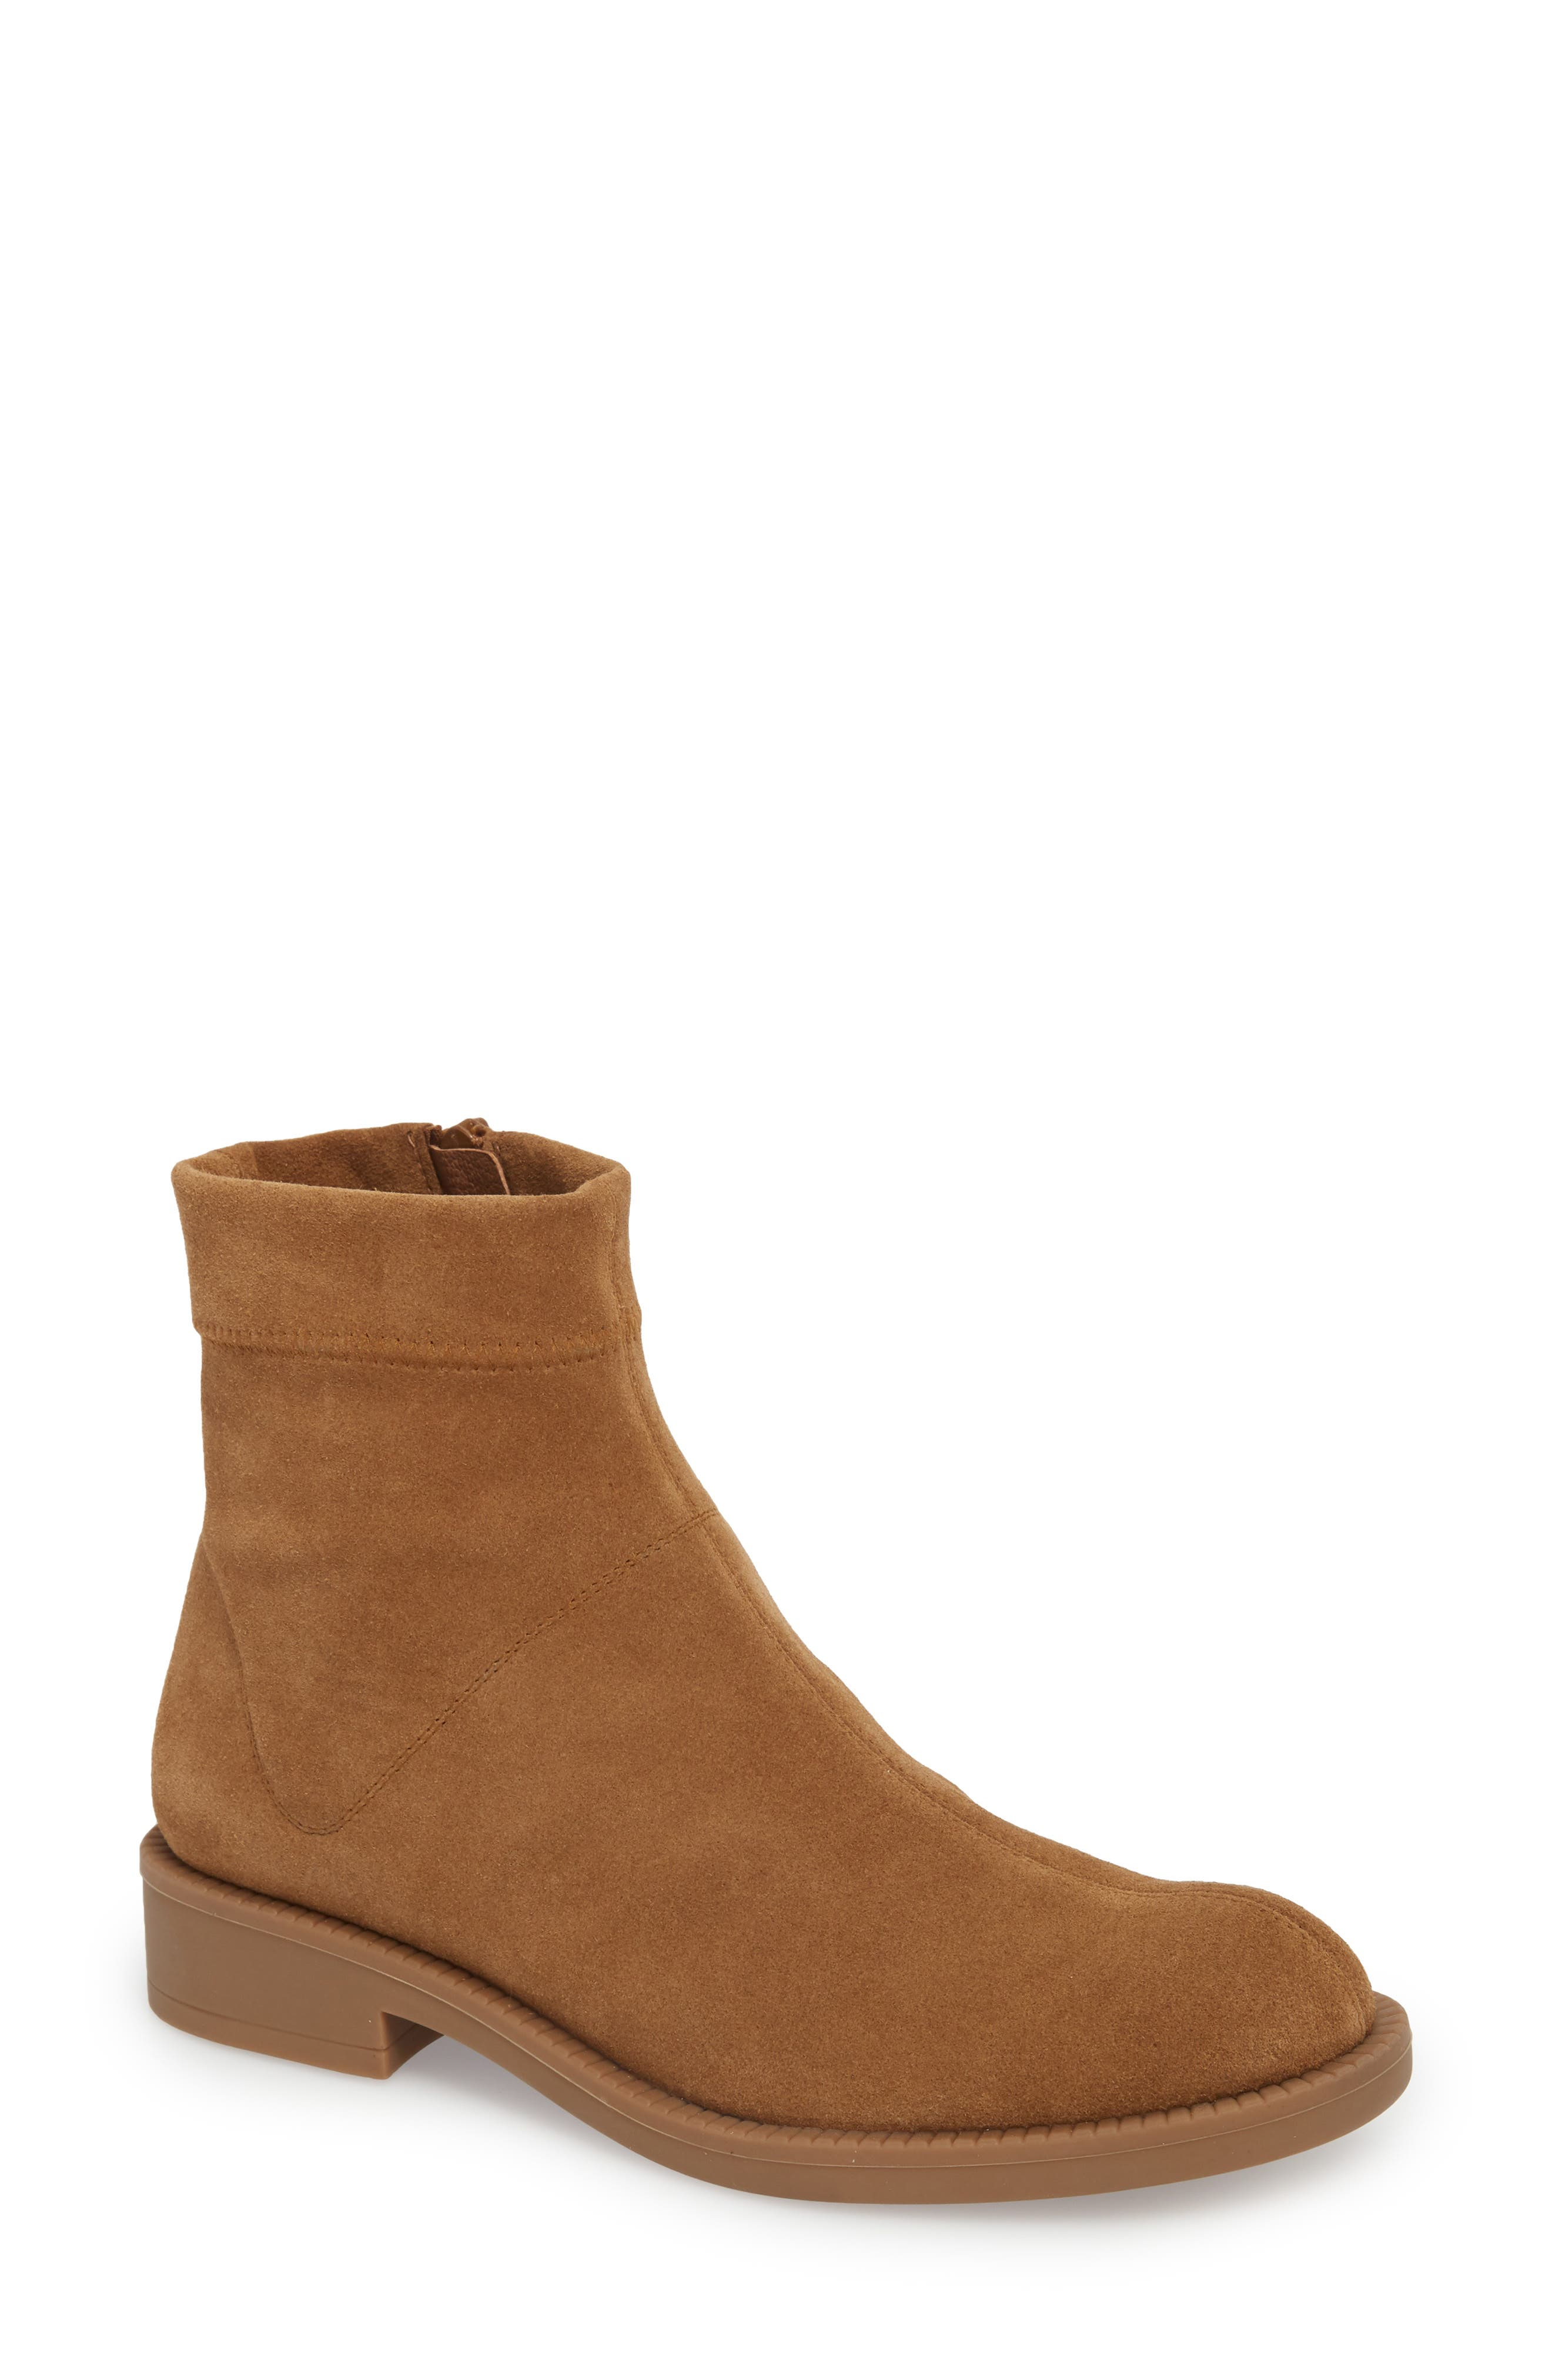 Kana Low Bootie,                             Main thumbnail 1, color,                             TOBACCO STRETCH  SUEDE